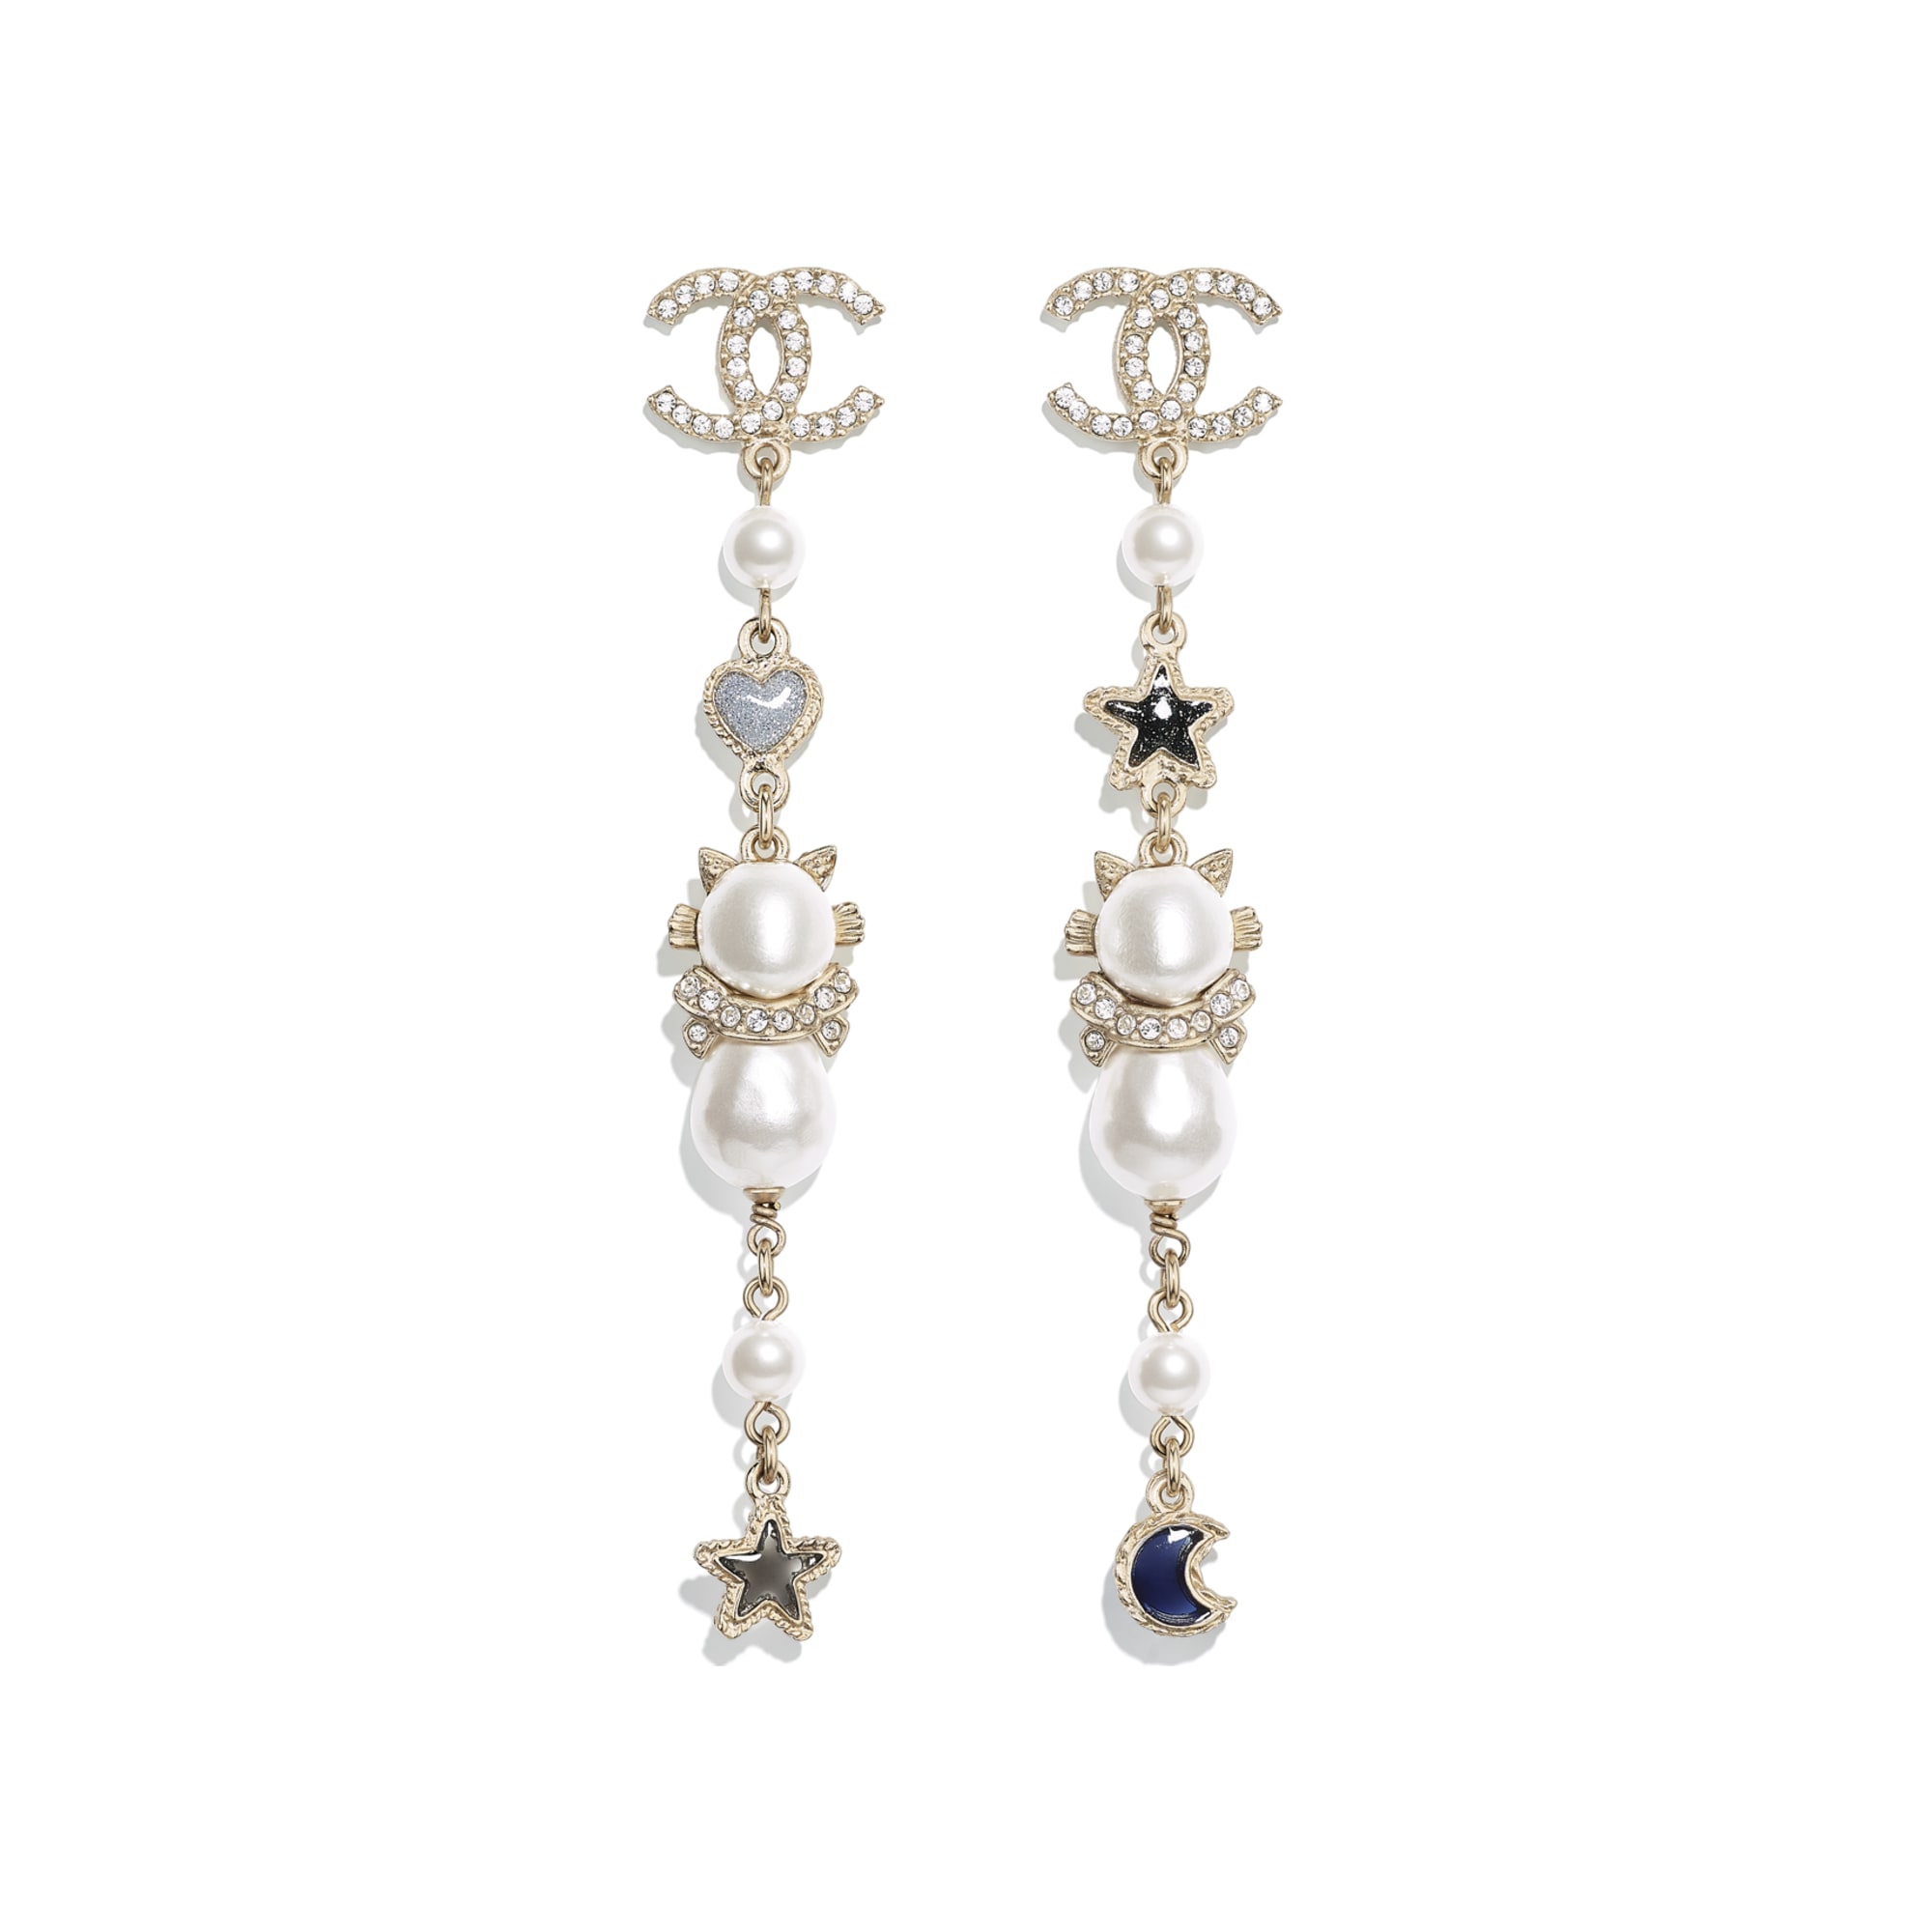 Earrings - Gold, Pearly White, Crystal, Blue & Gray - Metal, Glass Pearls, Imitation Pearls, Strass & Resin - CHANEL - Default view - see standard sized version